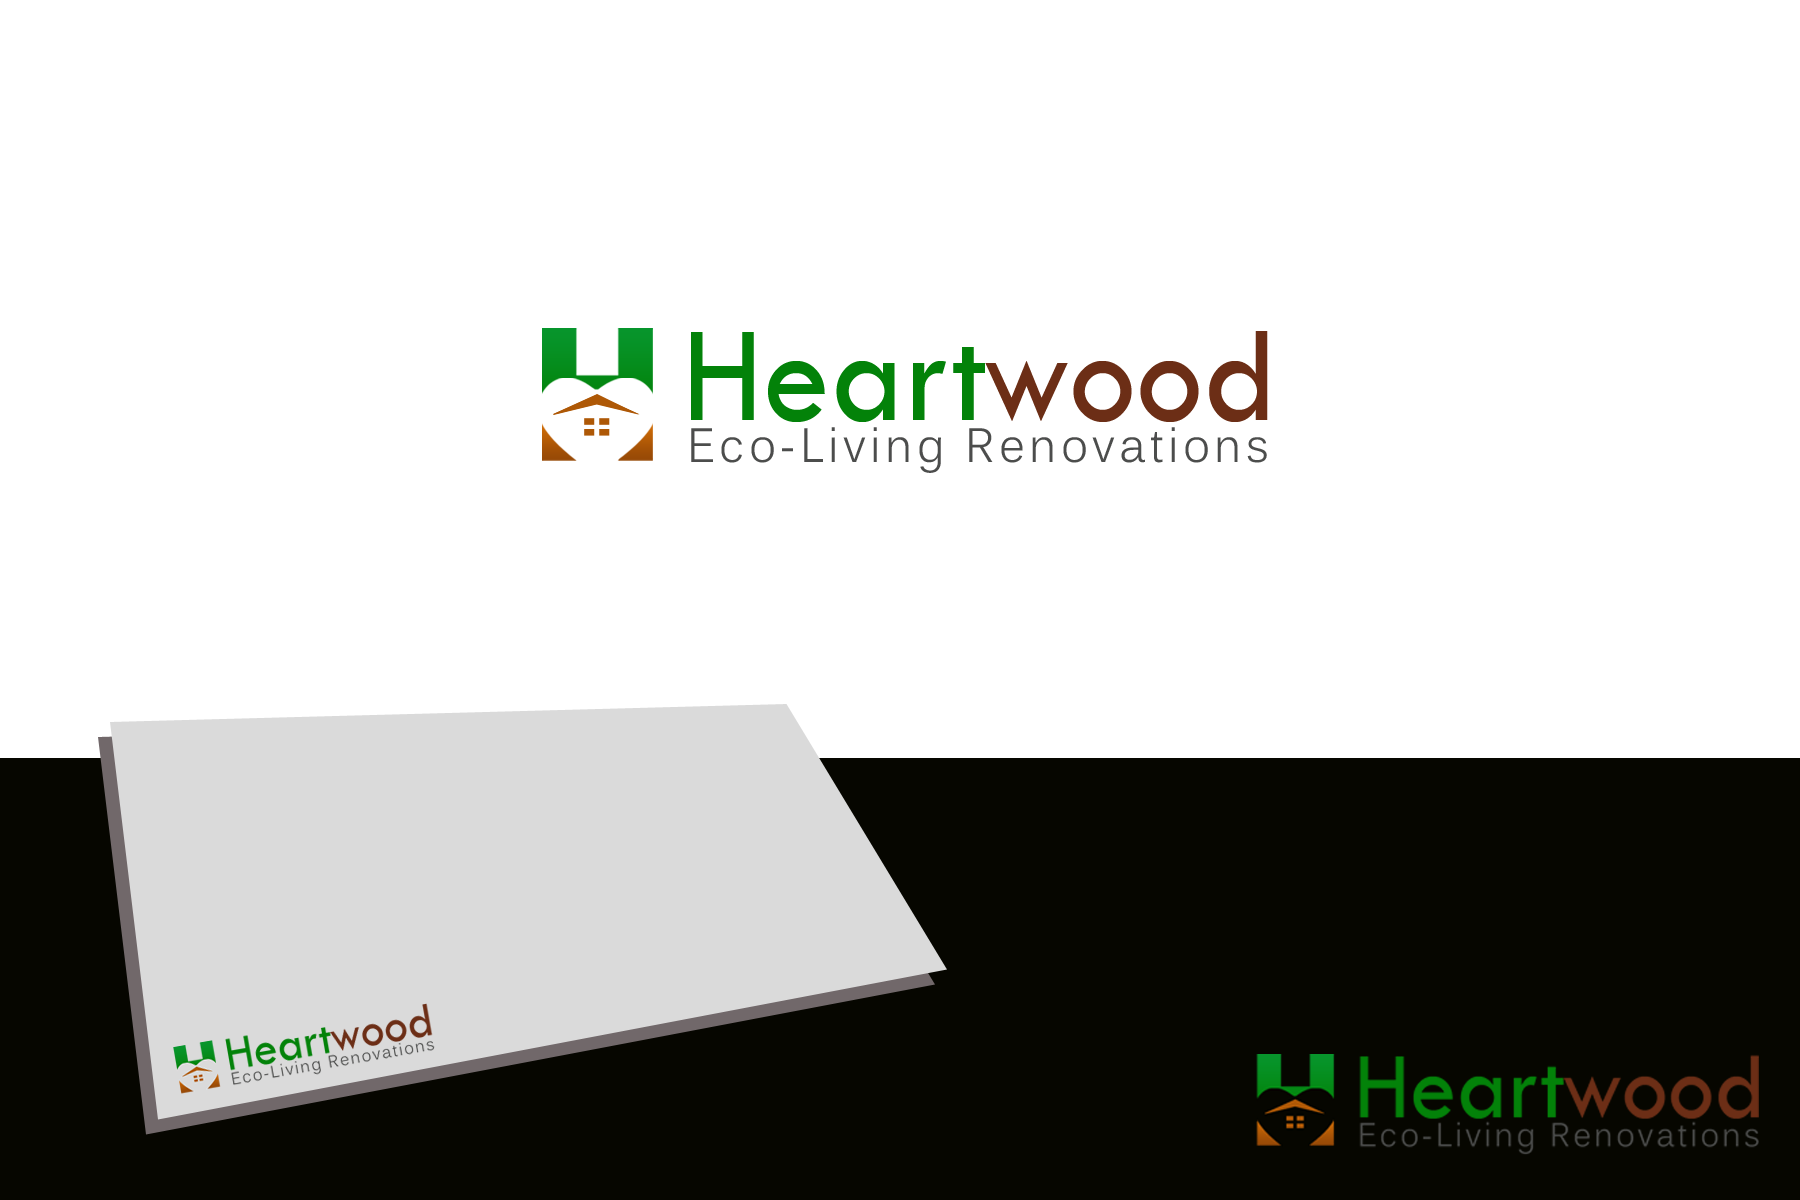 Logo Design by golden-hand - Entry No. 14 in the Logo Design Contest New Logo Design for Heartwood Eco-Living Renovations.